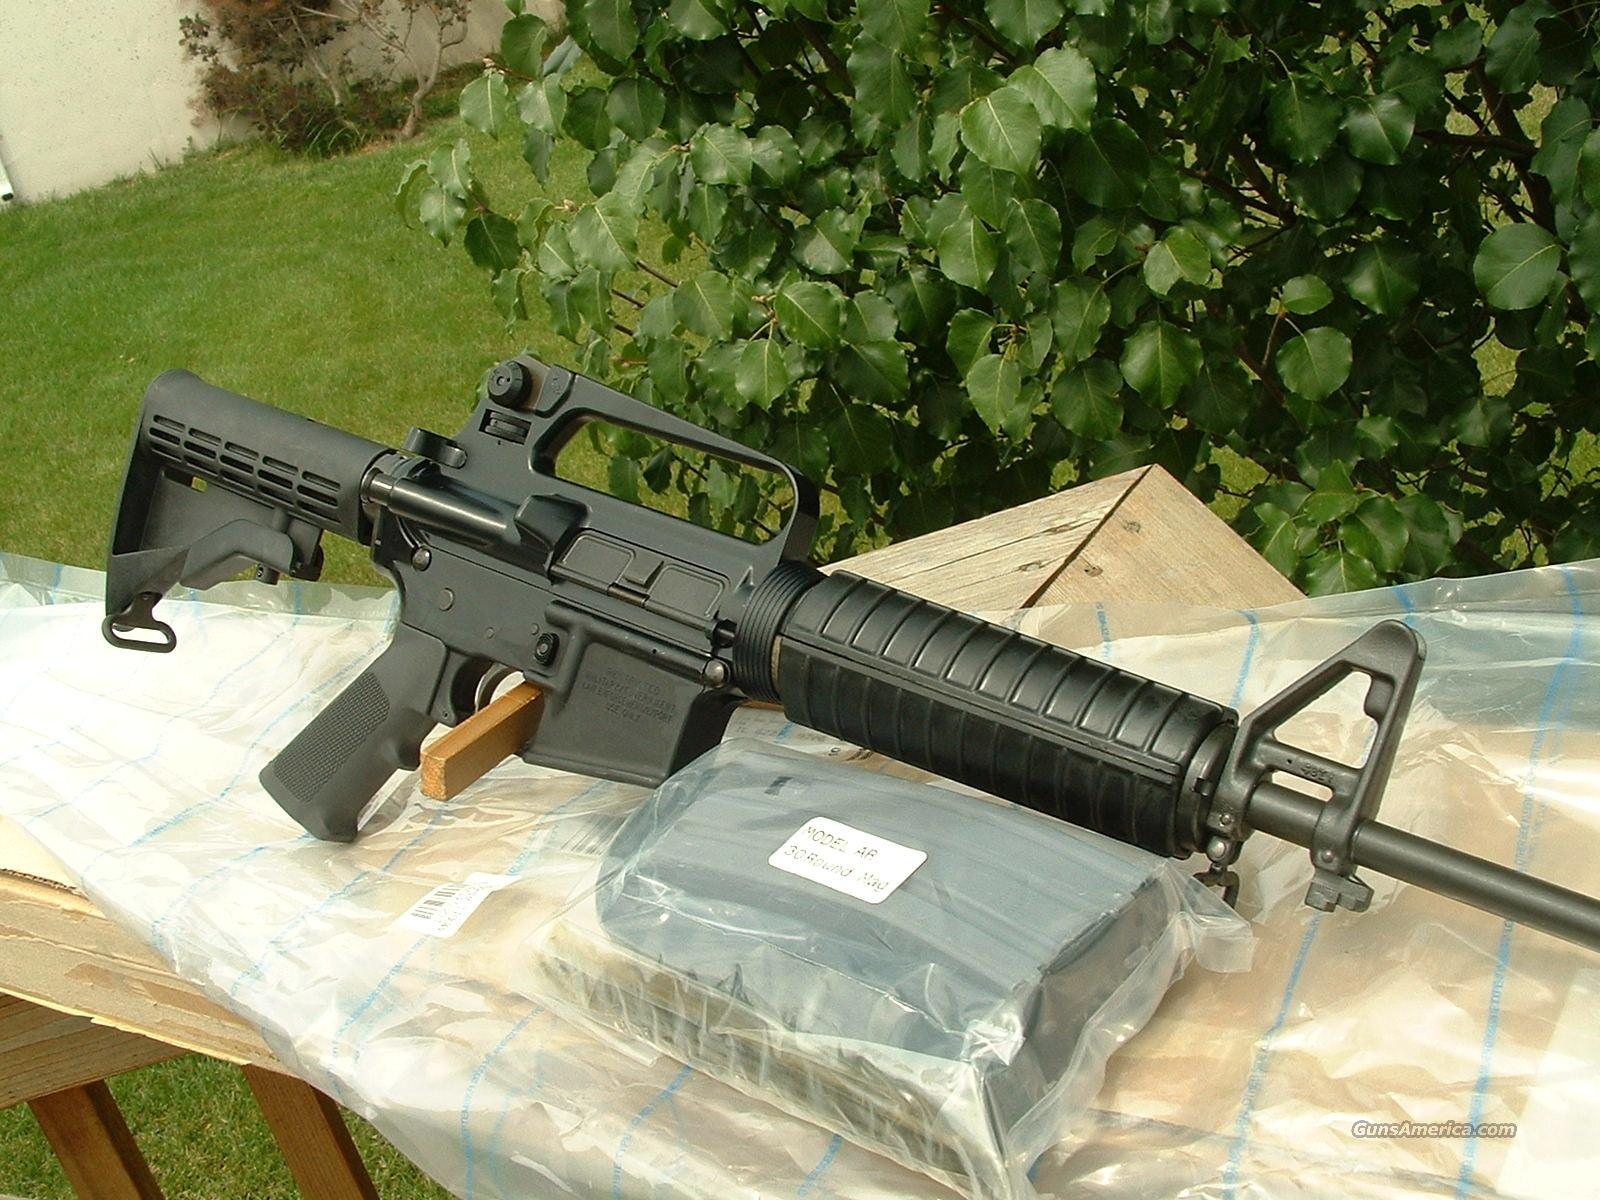 Colt AR-15 LE Gov't Carbine AR6520   NEW!  Guns > Rifles > Colt Military/Tactical Rifles